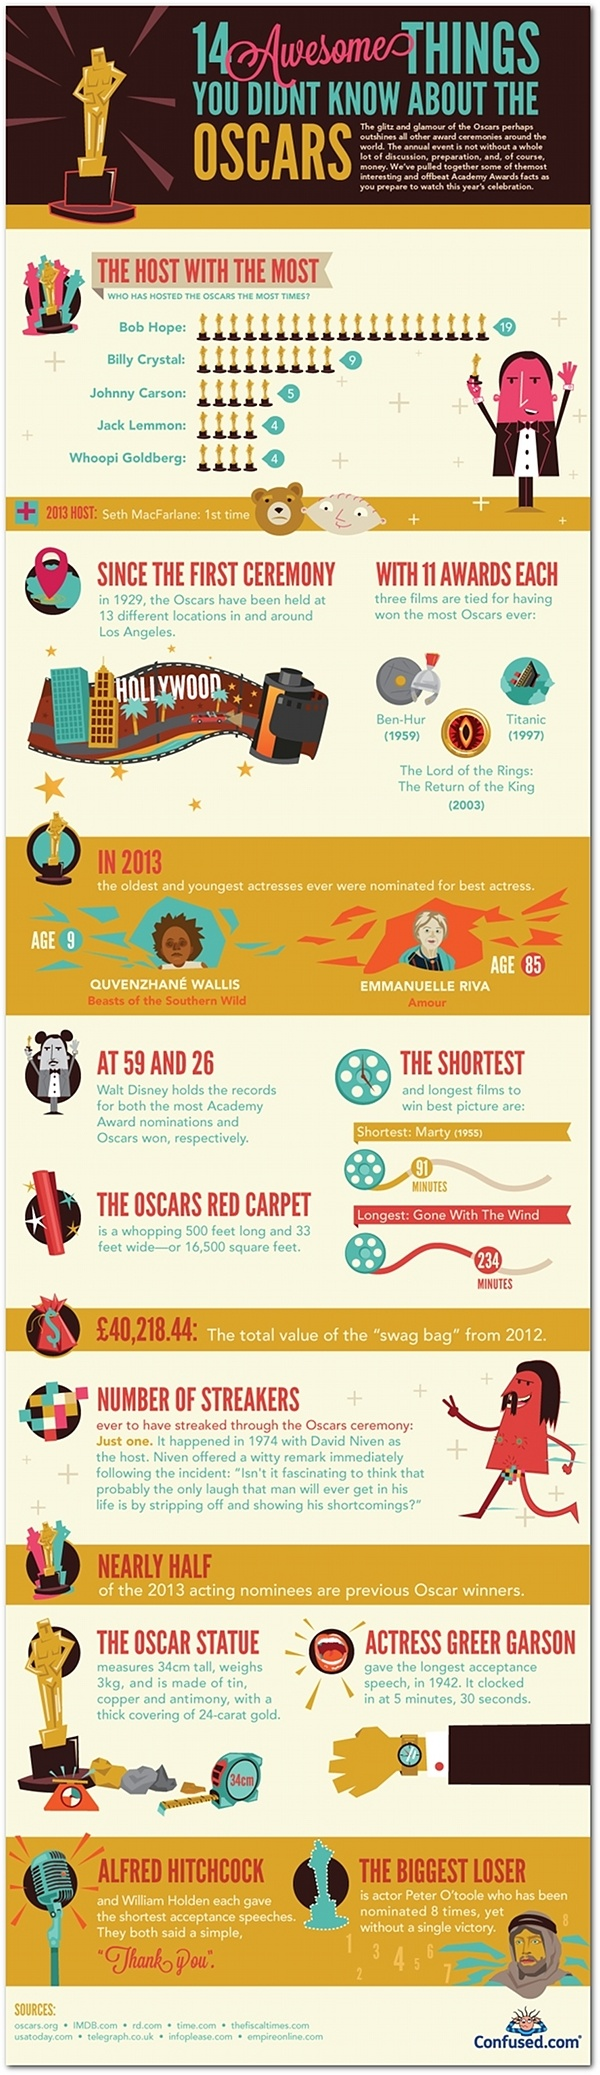 14 things you (probably) didn't know about the Oscars